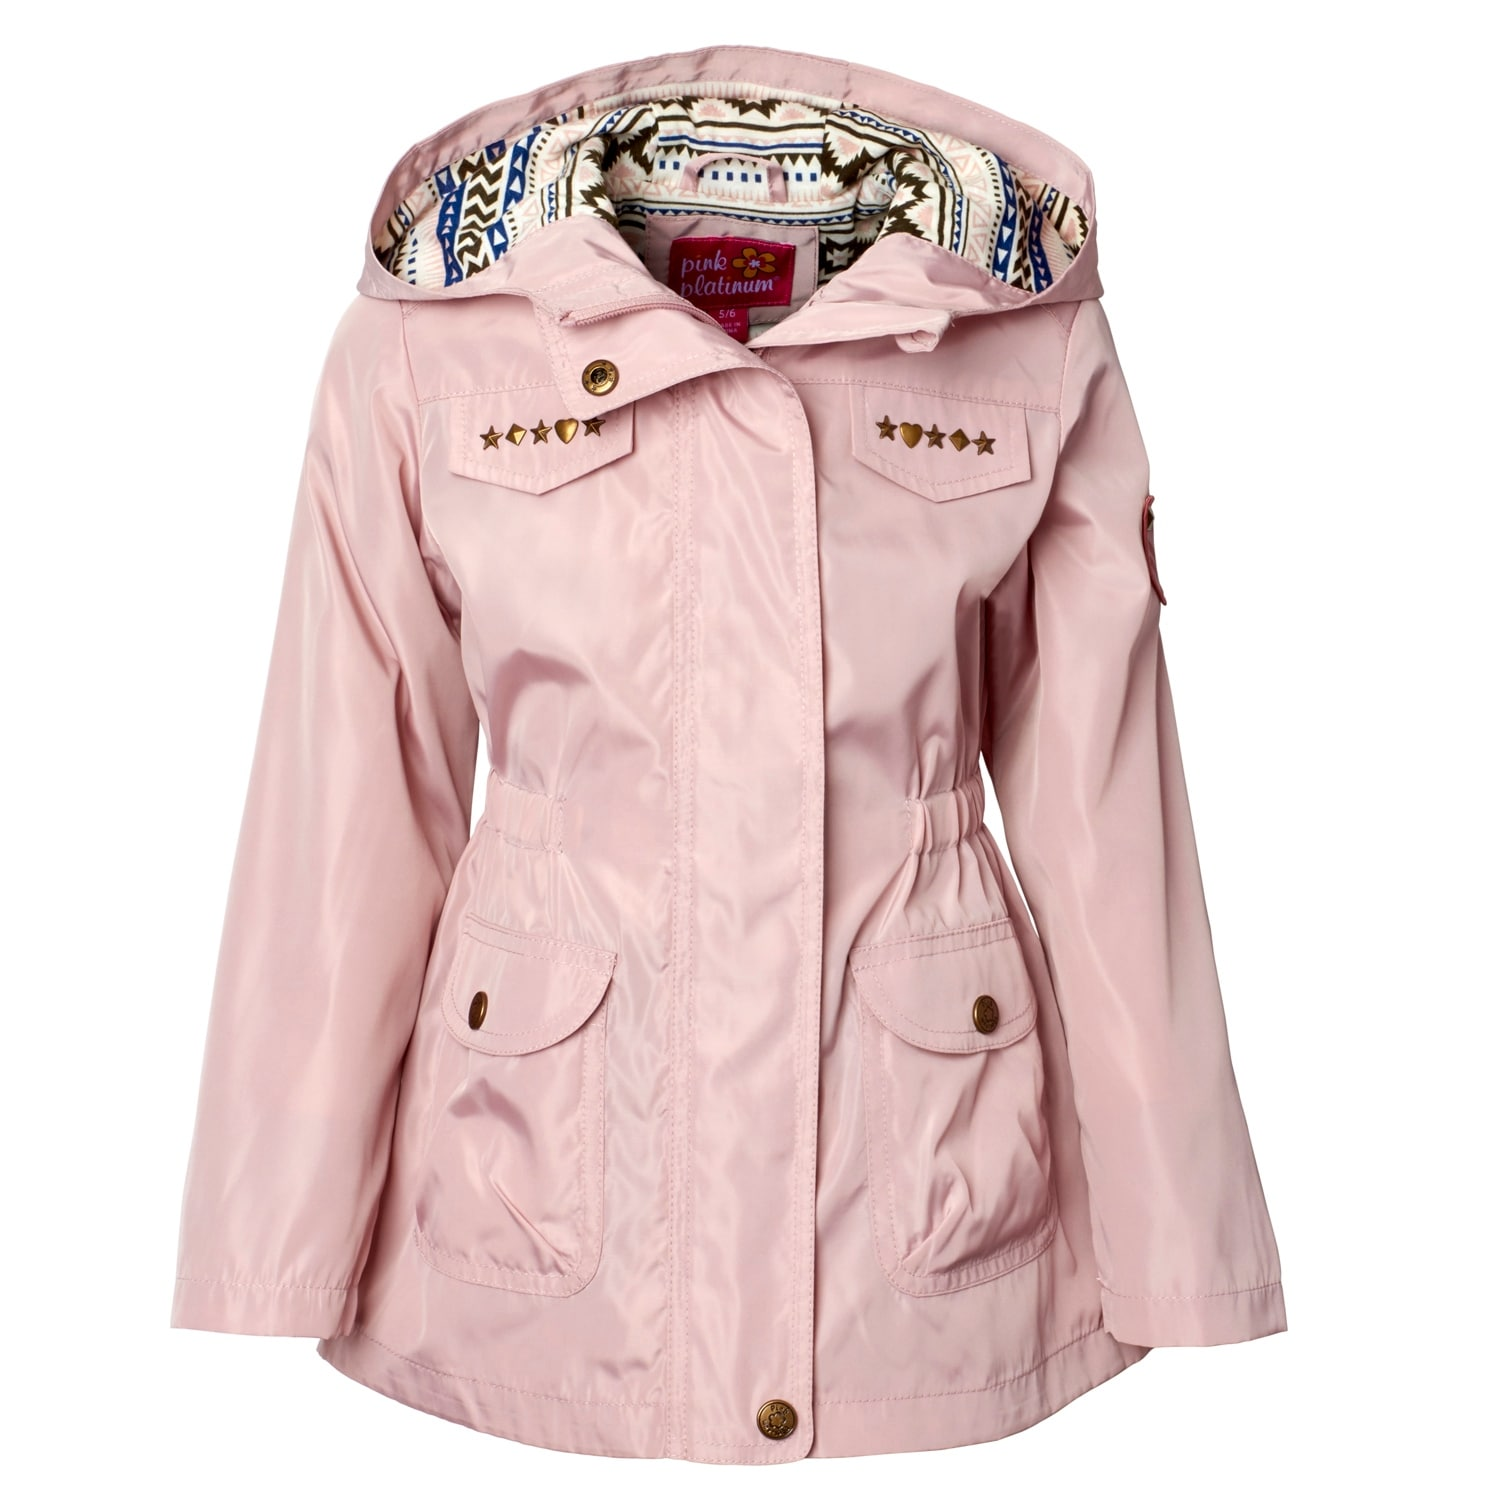 puffer com platinum ip lace girls walmart jacket pink